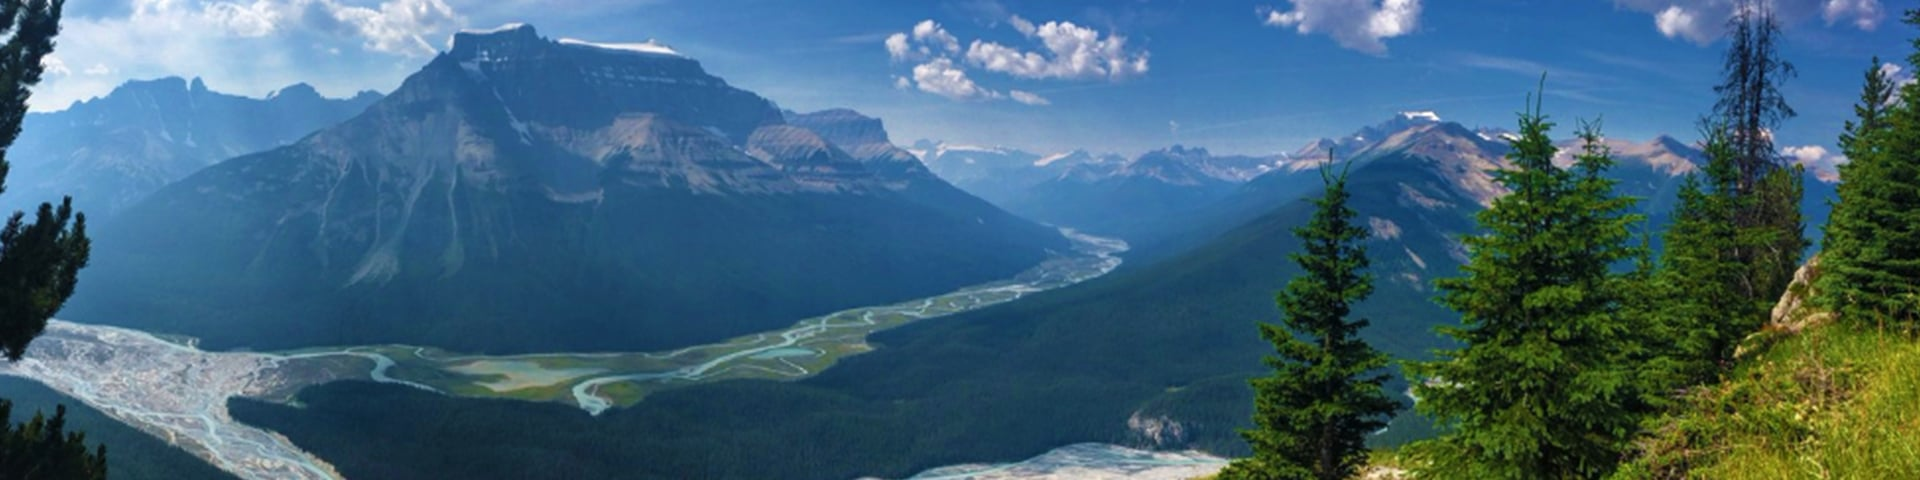 Panoramic views of the Peyto Lake Viewpoint hike from Icefields Parkway, the Canadian Rockies